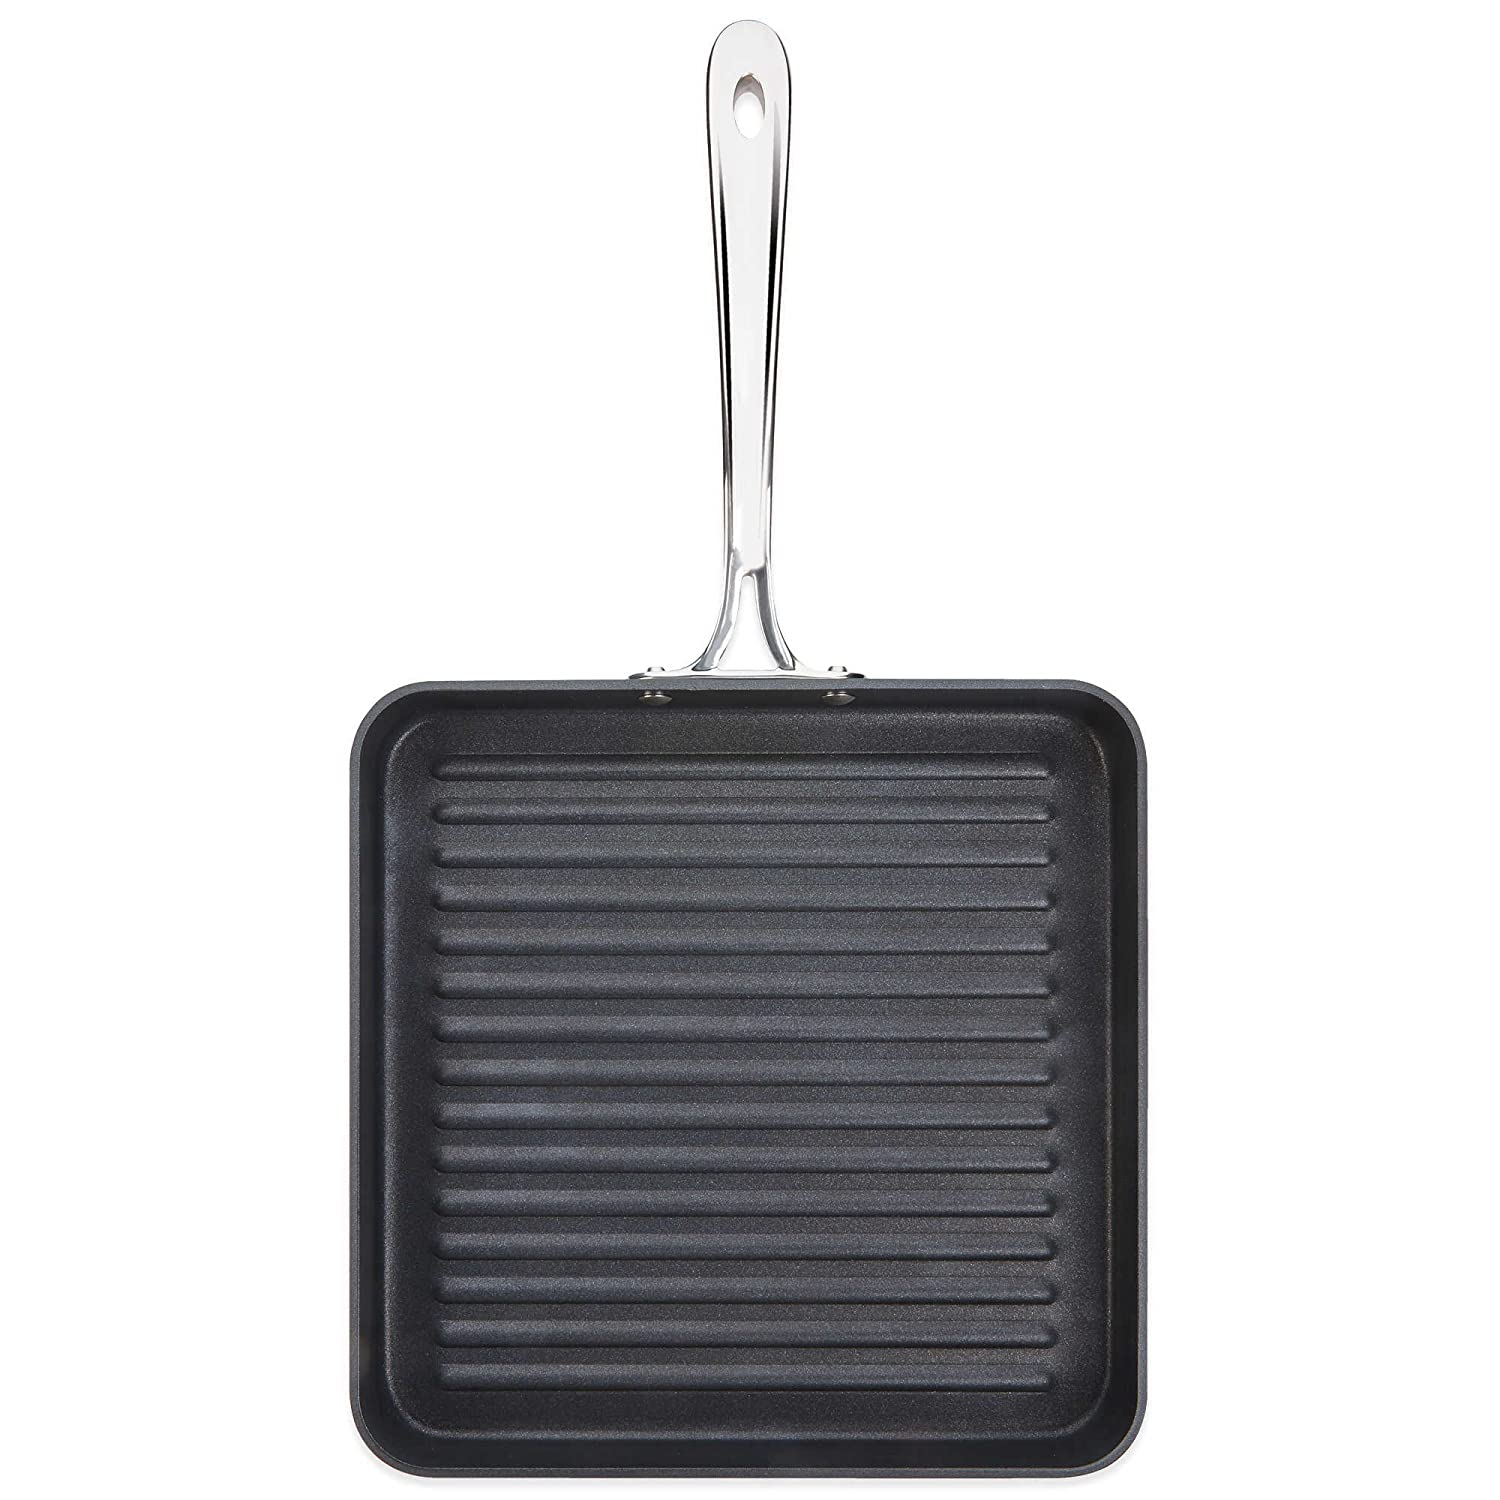 B1 Hard Anodized Nonstick 11 Inch Flat Square Grille Pan with Double-Riveted Handle (Imported) by All-Clad